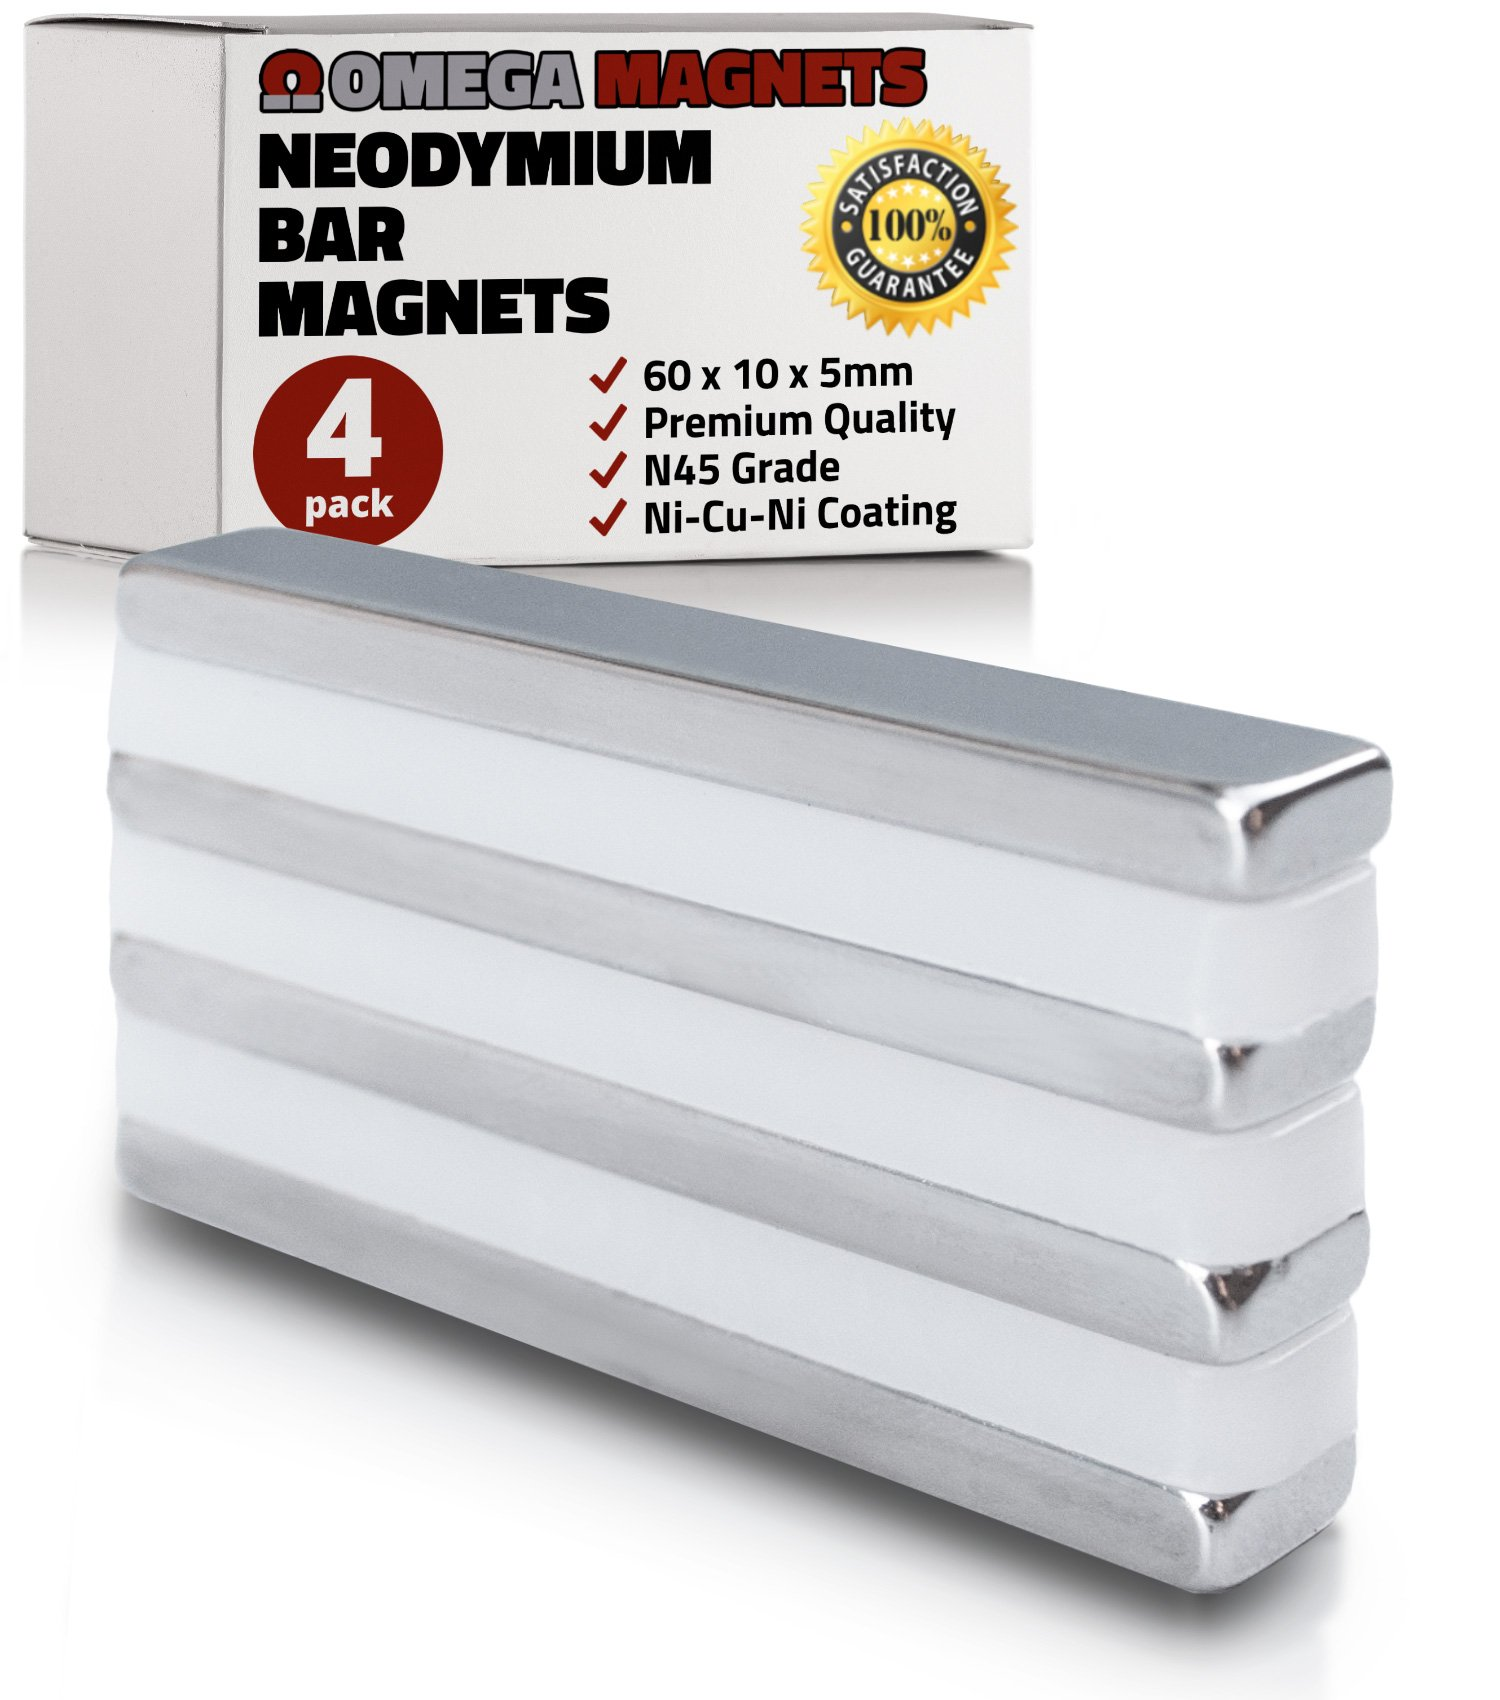 Strong Neodymium Bar Magnets (4 Pack) - Powerful, Rectangular Rare Earth Magnets - N45 Industrial Strength NdFeB Block Magnet Set for Misti, DIY, Crafts - 60 x 10 x 5mm